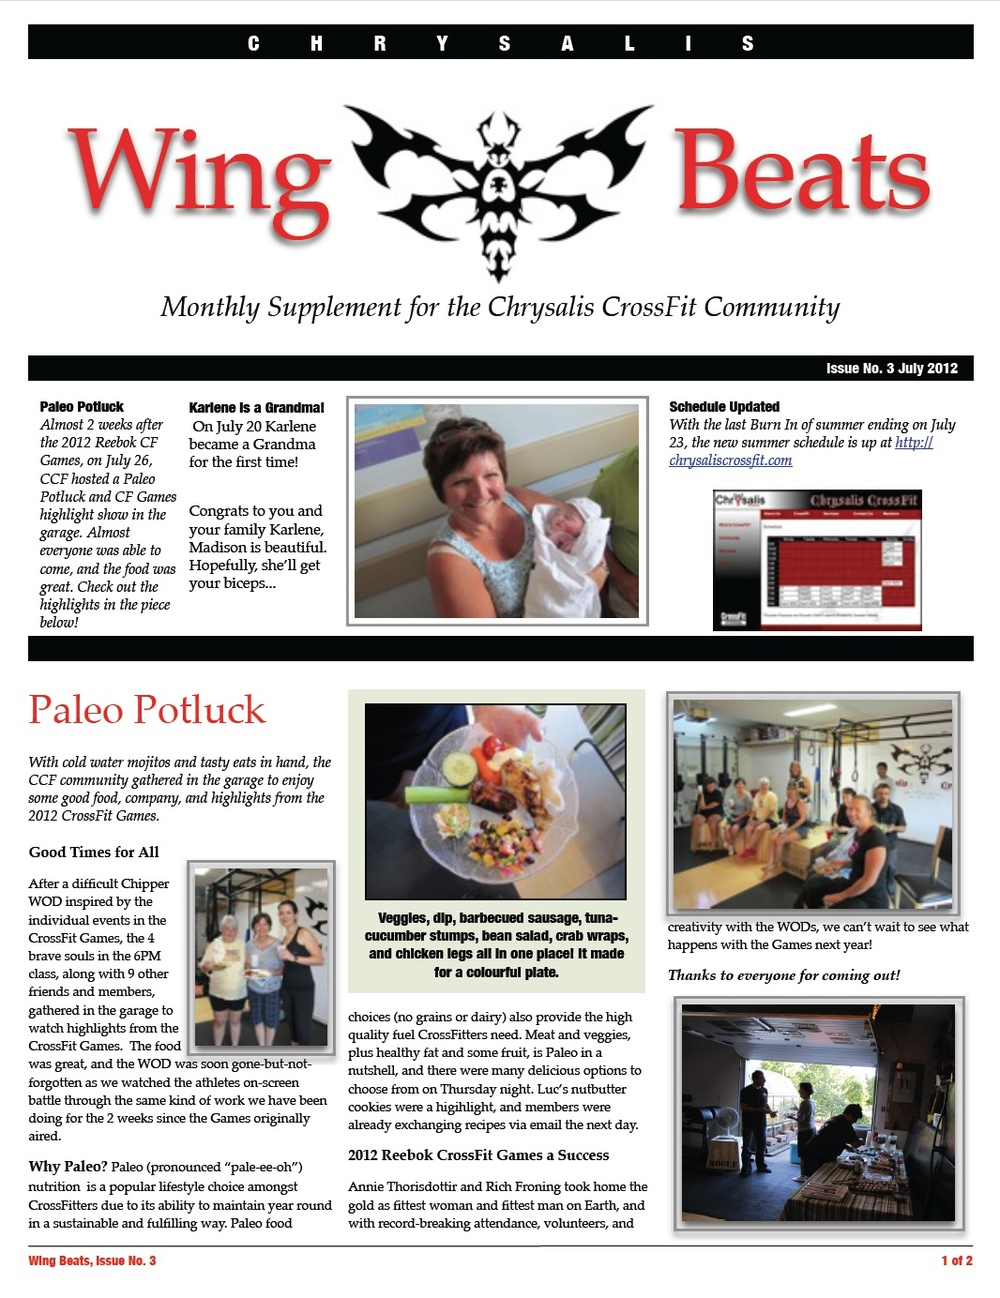 WingBeats Issue #3 - July 2012